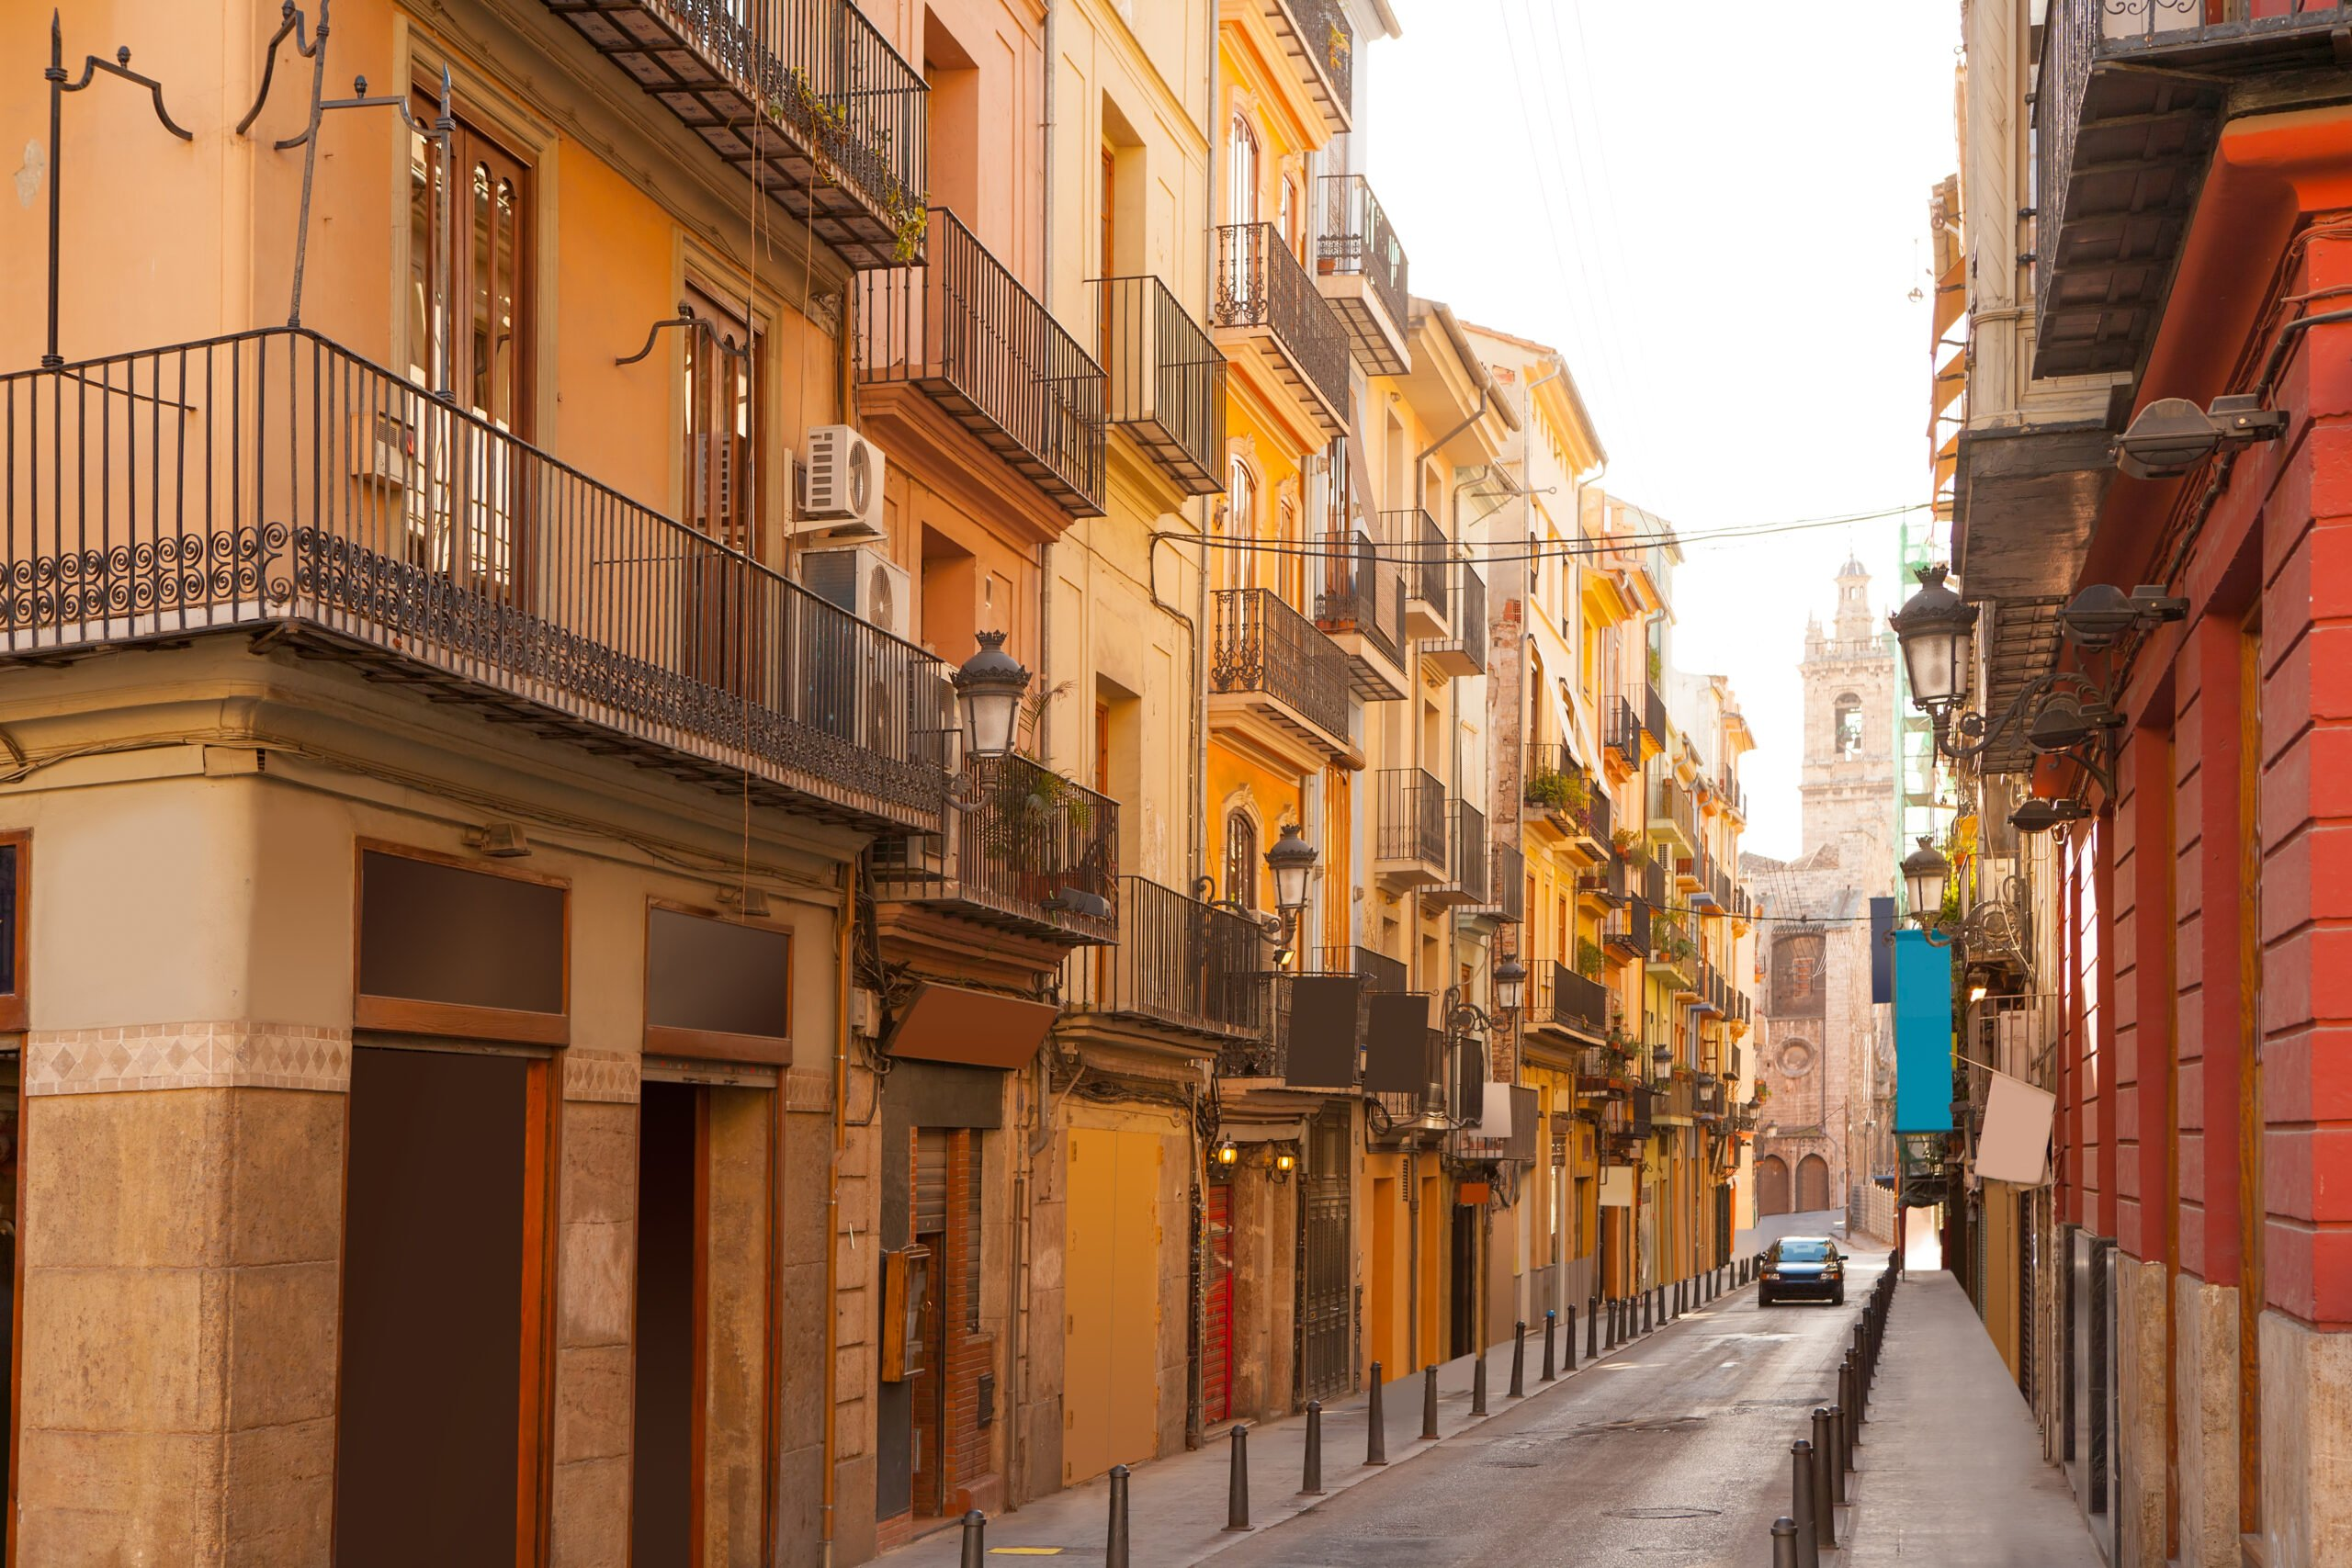 Uncover The Secrets Of Valencia Old Town In Our Valencia Old Town Tour With Wine & Tapas In 11th Century Monument